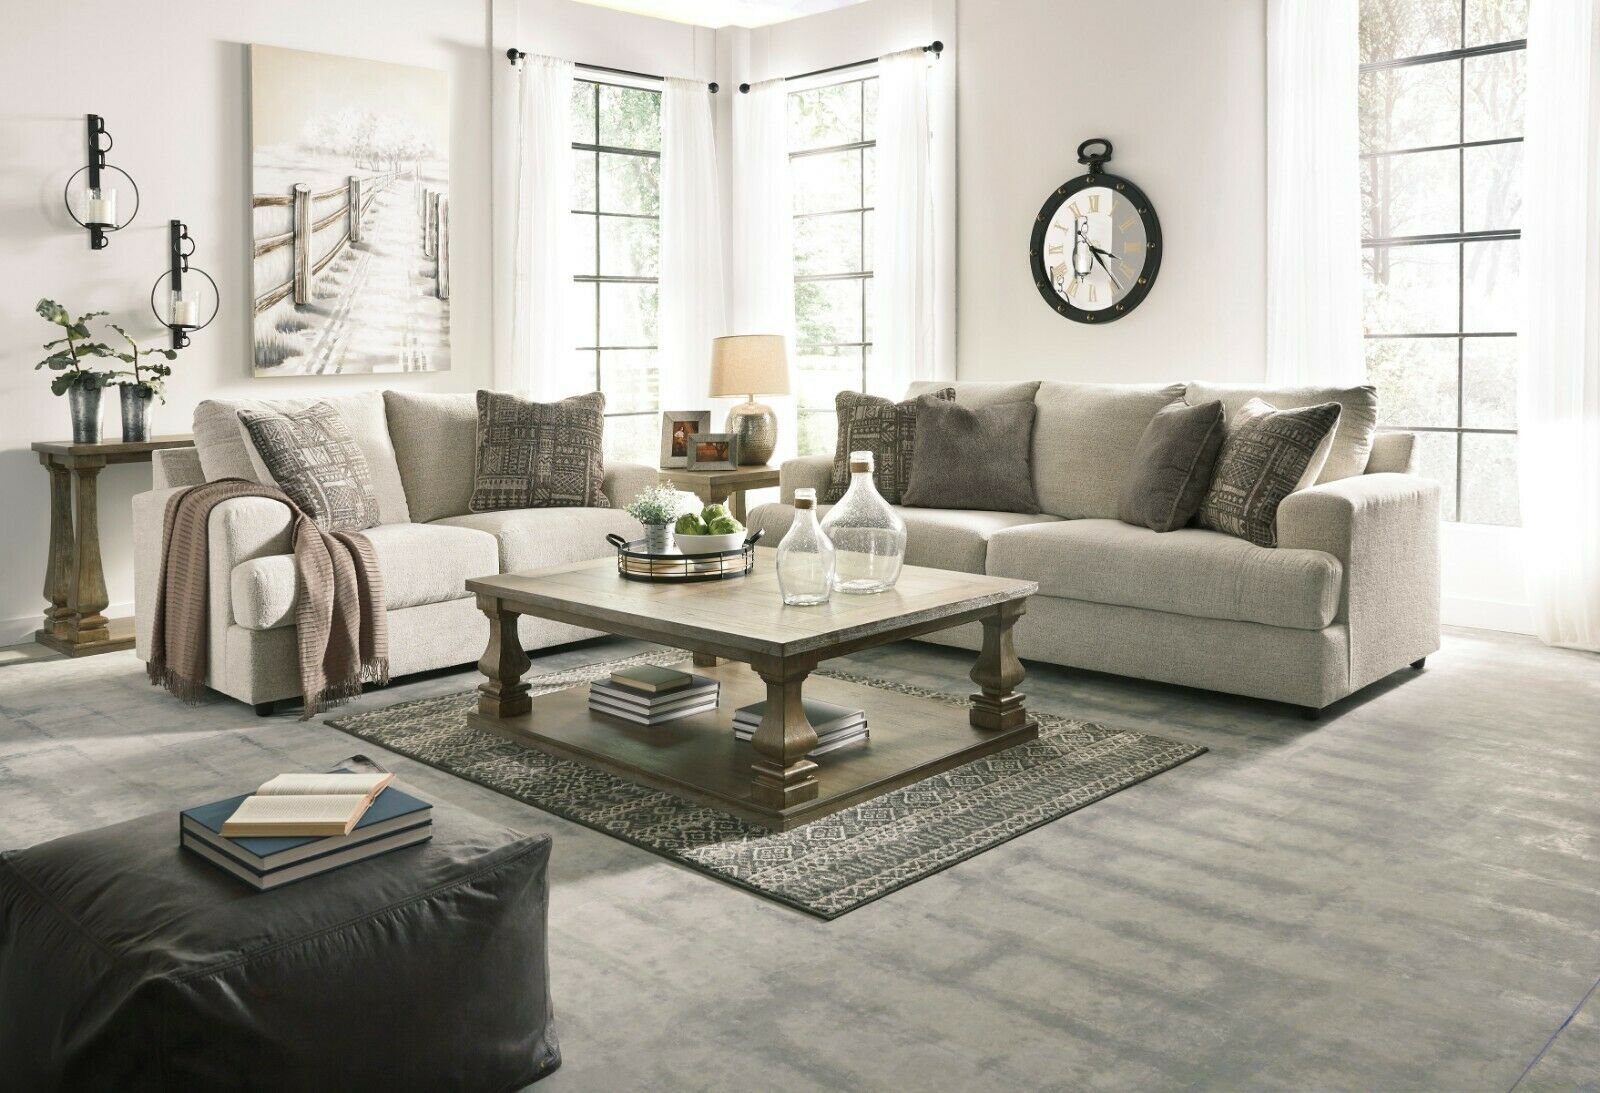 Ashley Furniture Soletren Stone Sofa And Loveseat Living Room